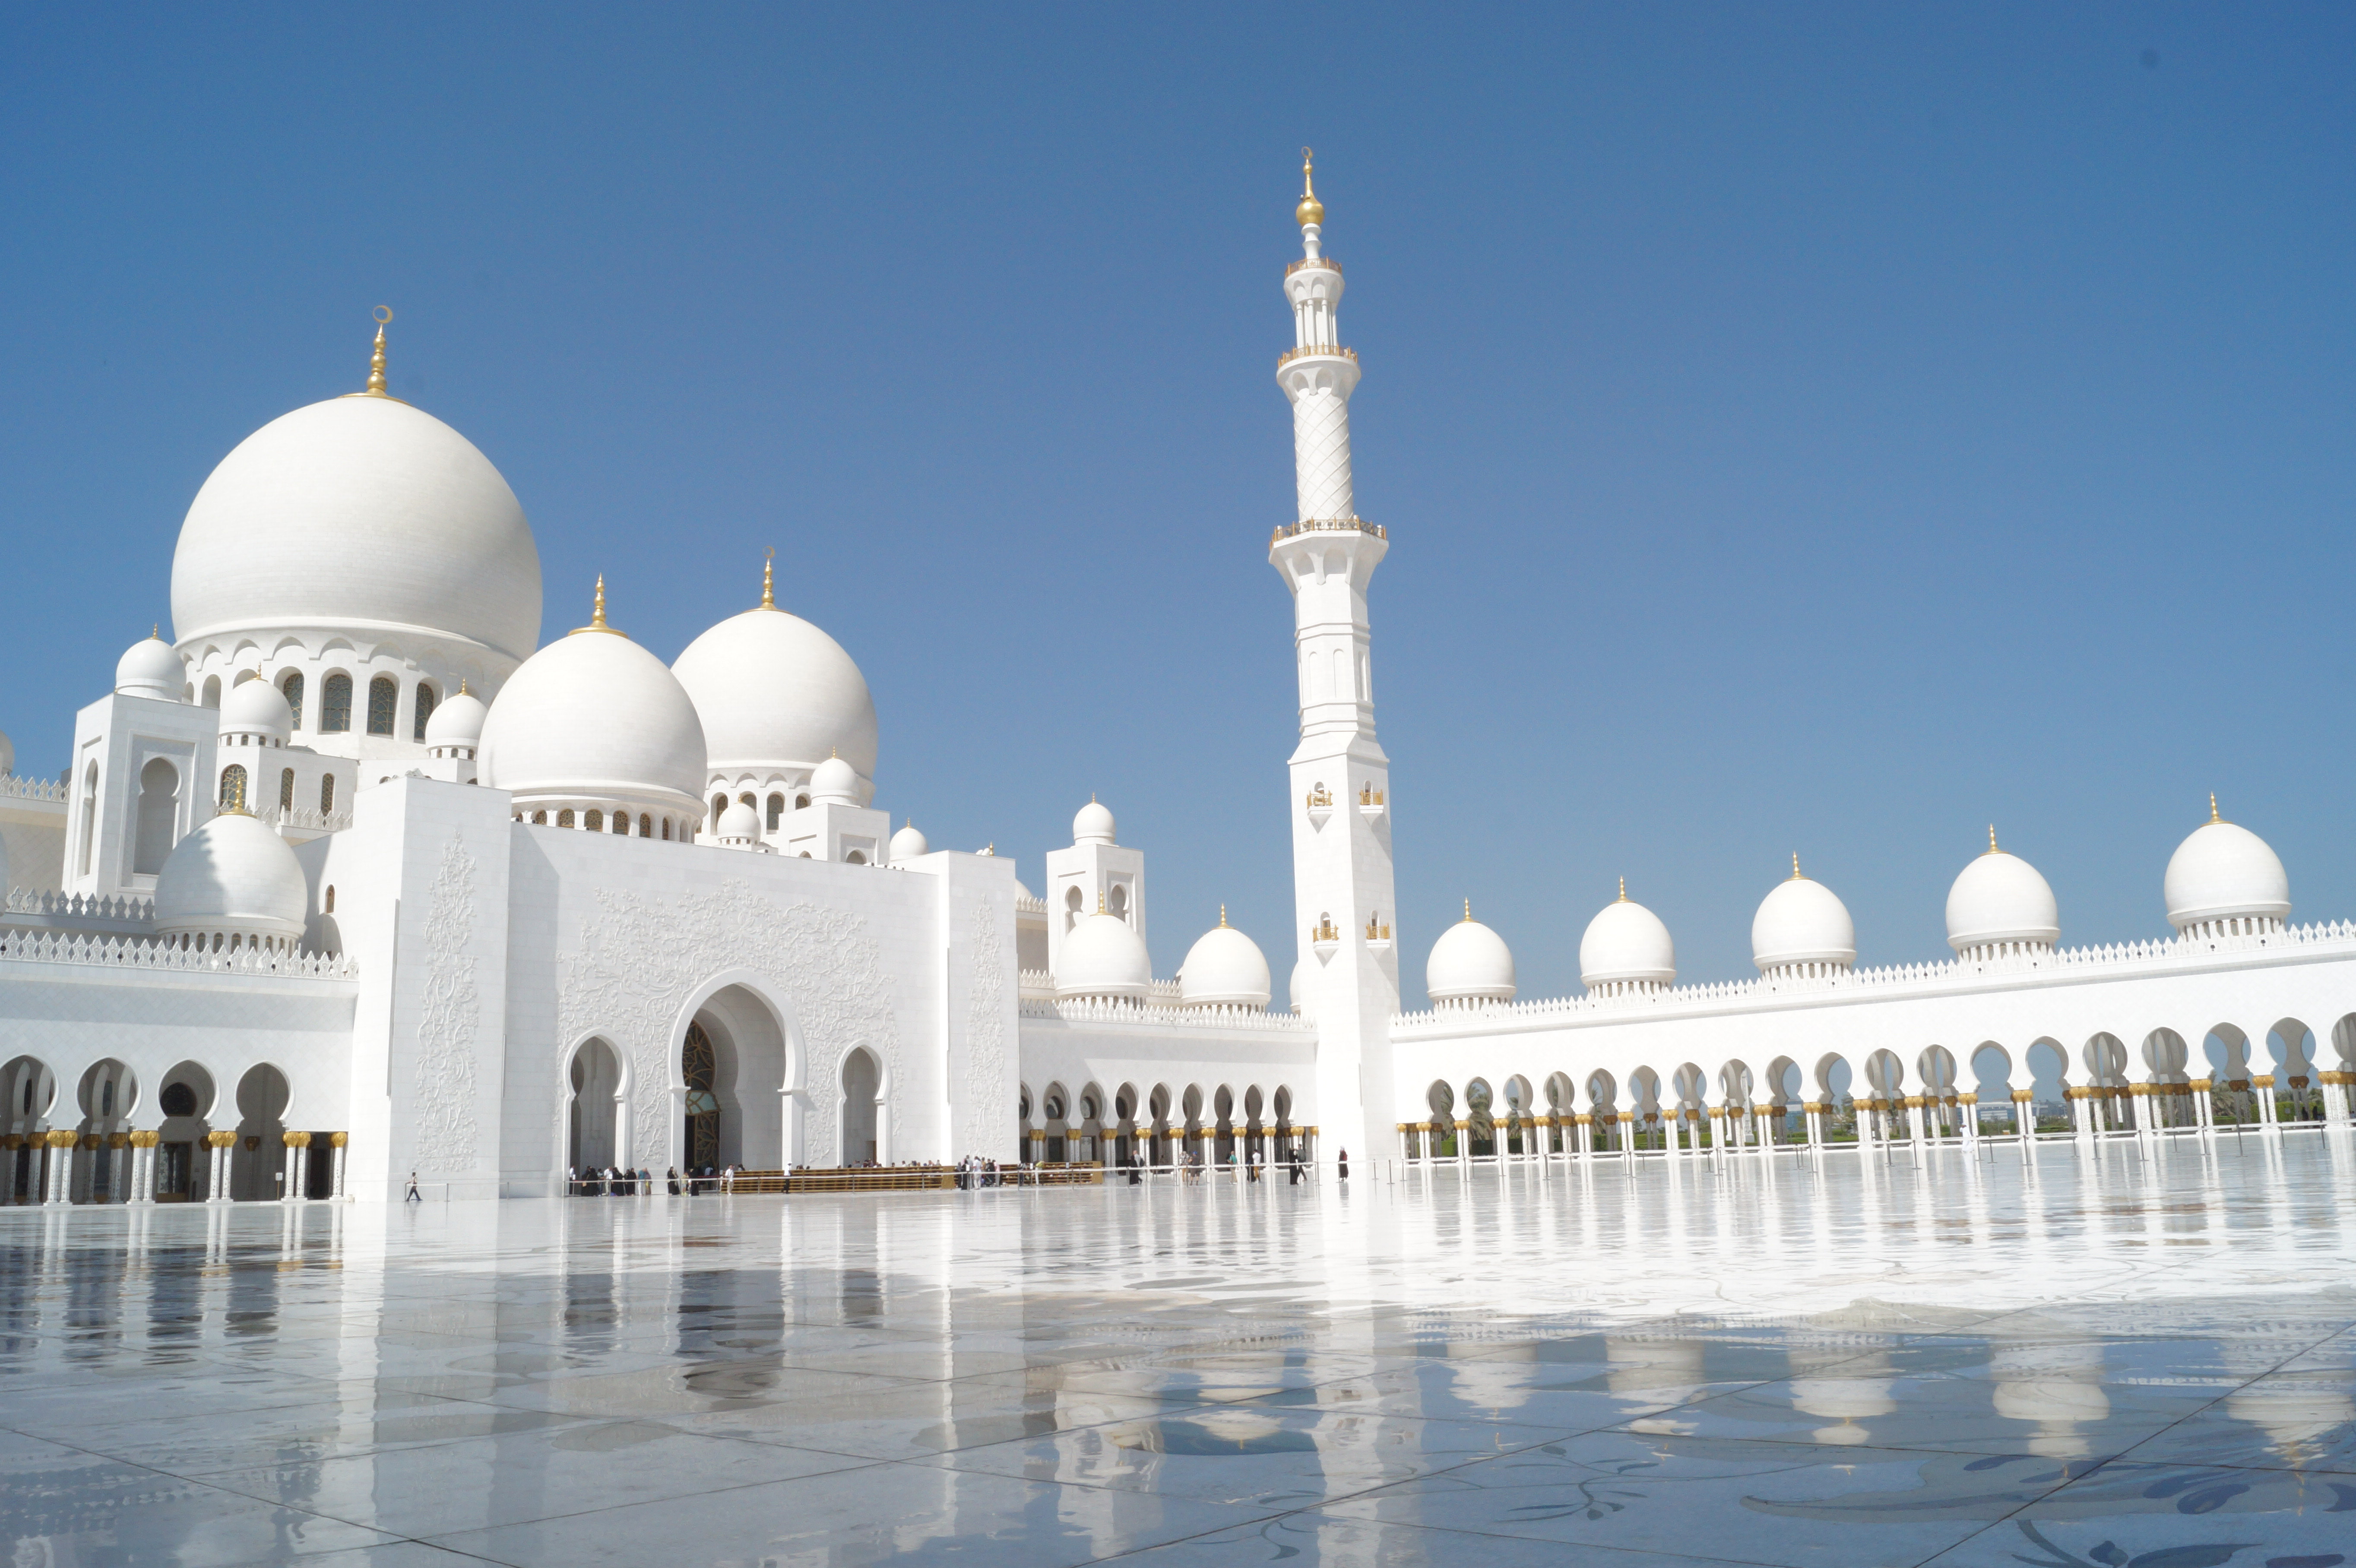 Sand dunes and Mosques – another side of the UAE ...